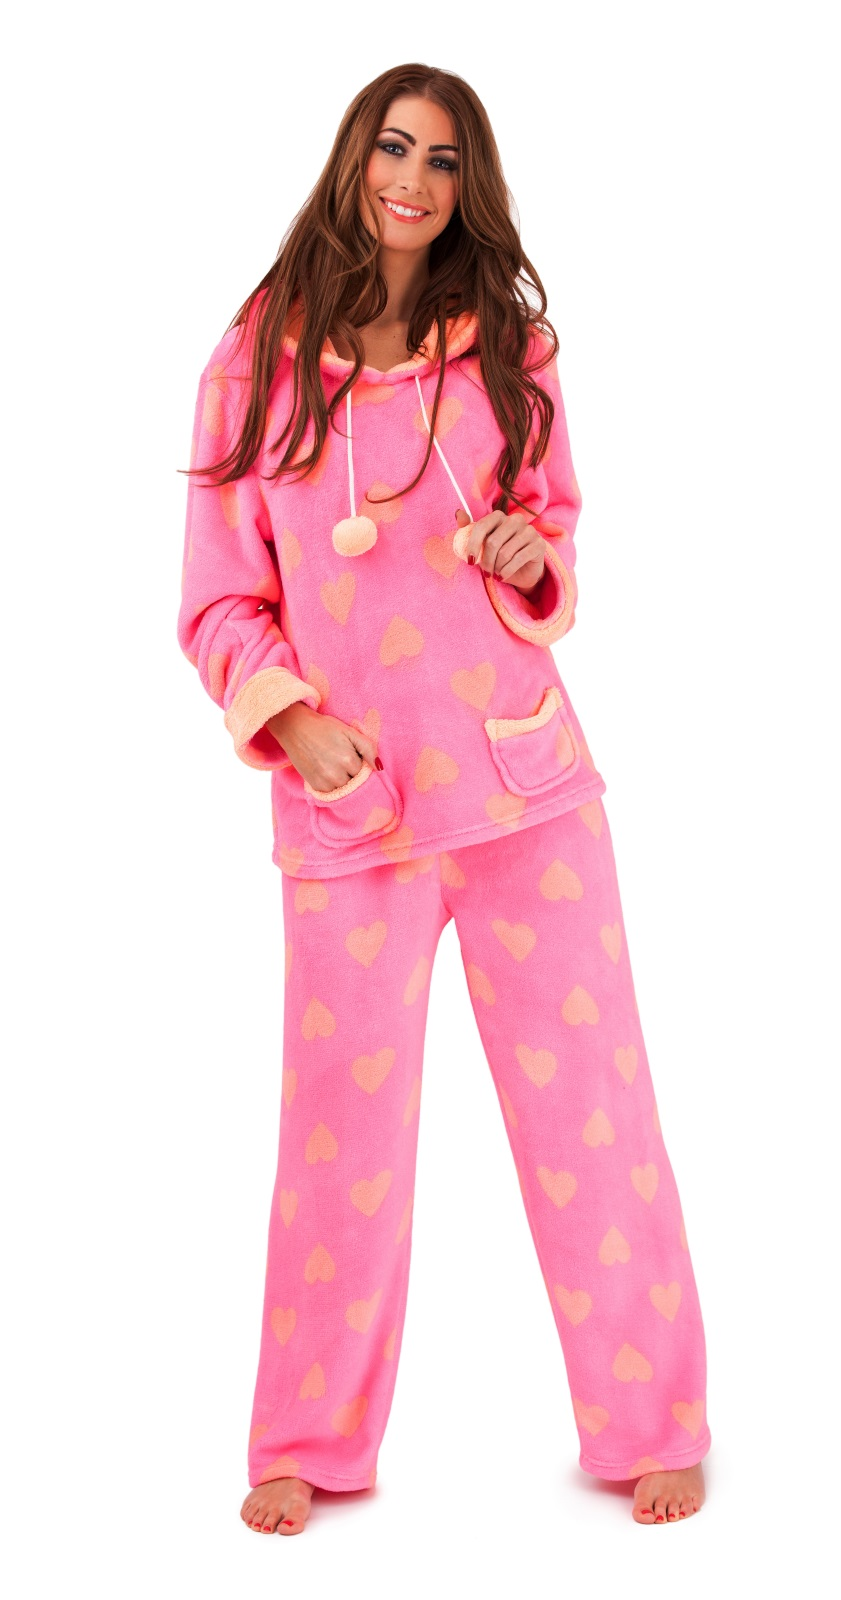 Get free shipping on pajamas for women at Bare Necessities! Our sleepwear includes pajama tops and sets, lounge pants, nightgowns, babydolls, robes & more. Bare Necessities is the only online intimates retailer to offer certified Bra Fit Experts to its customers! Call ext 4.